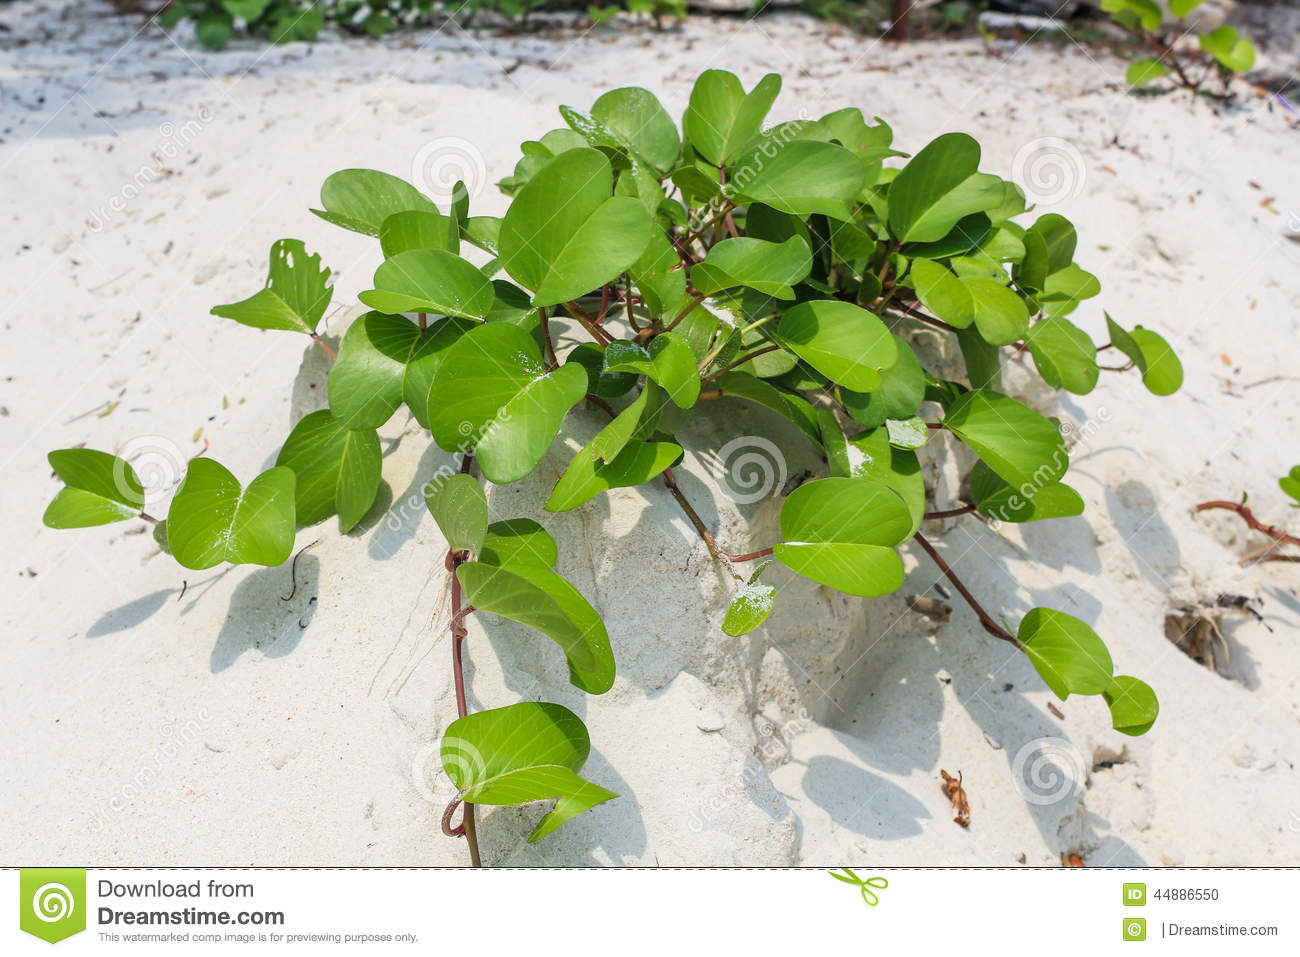 Ipomoea on the beach